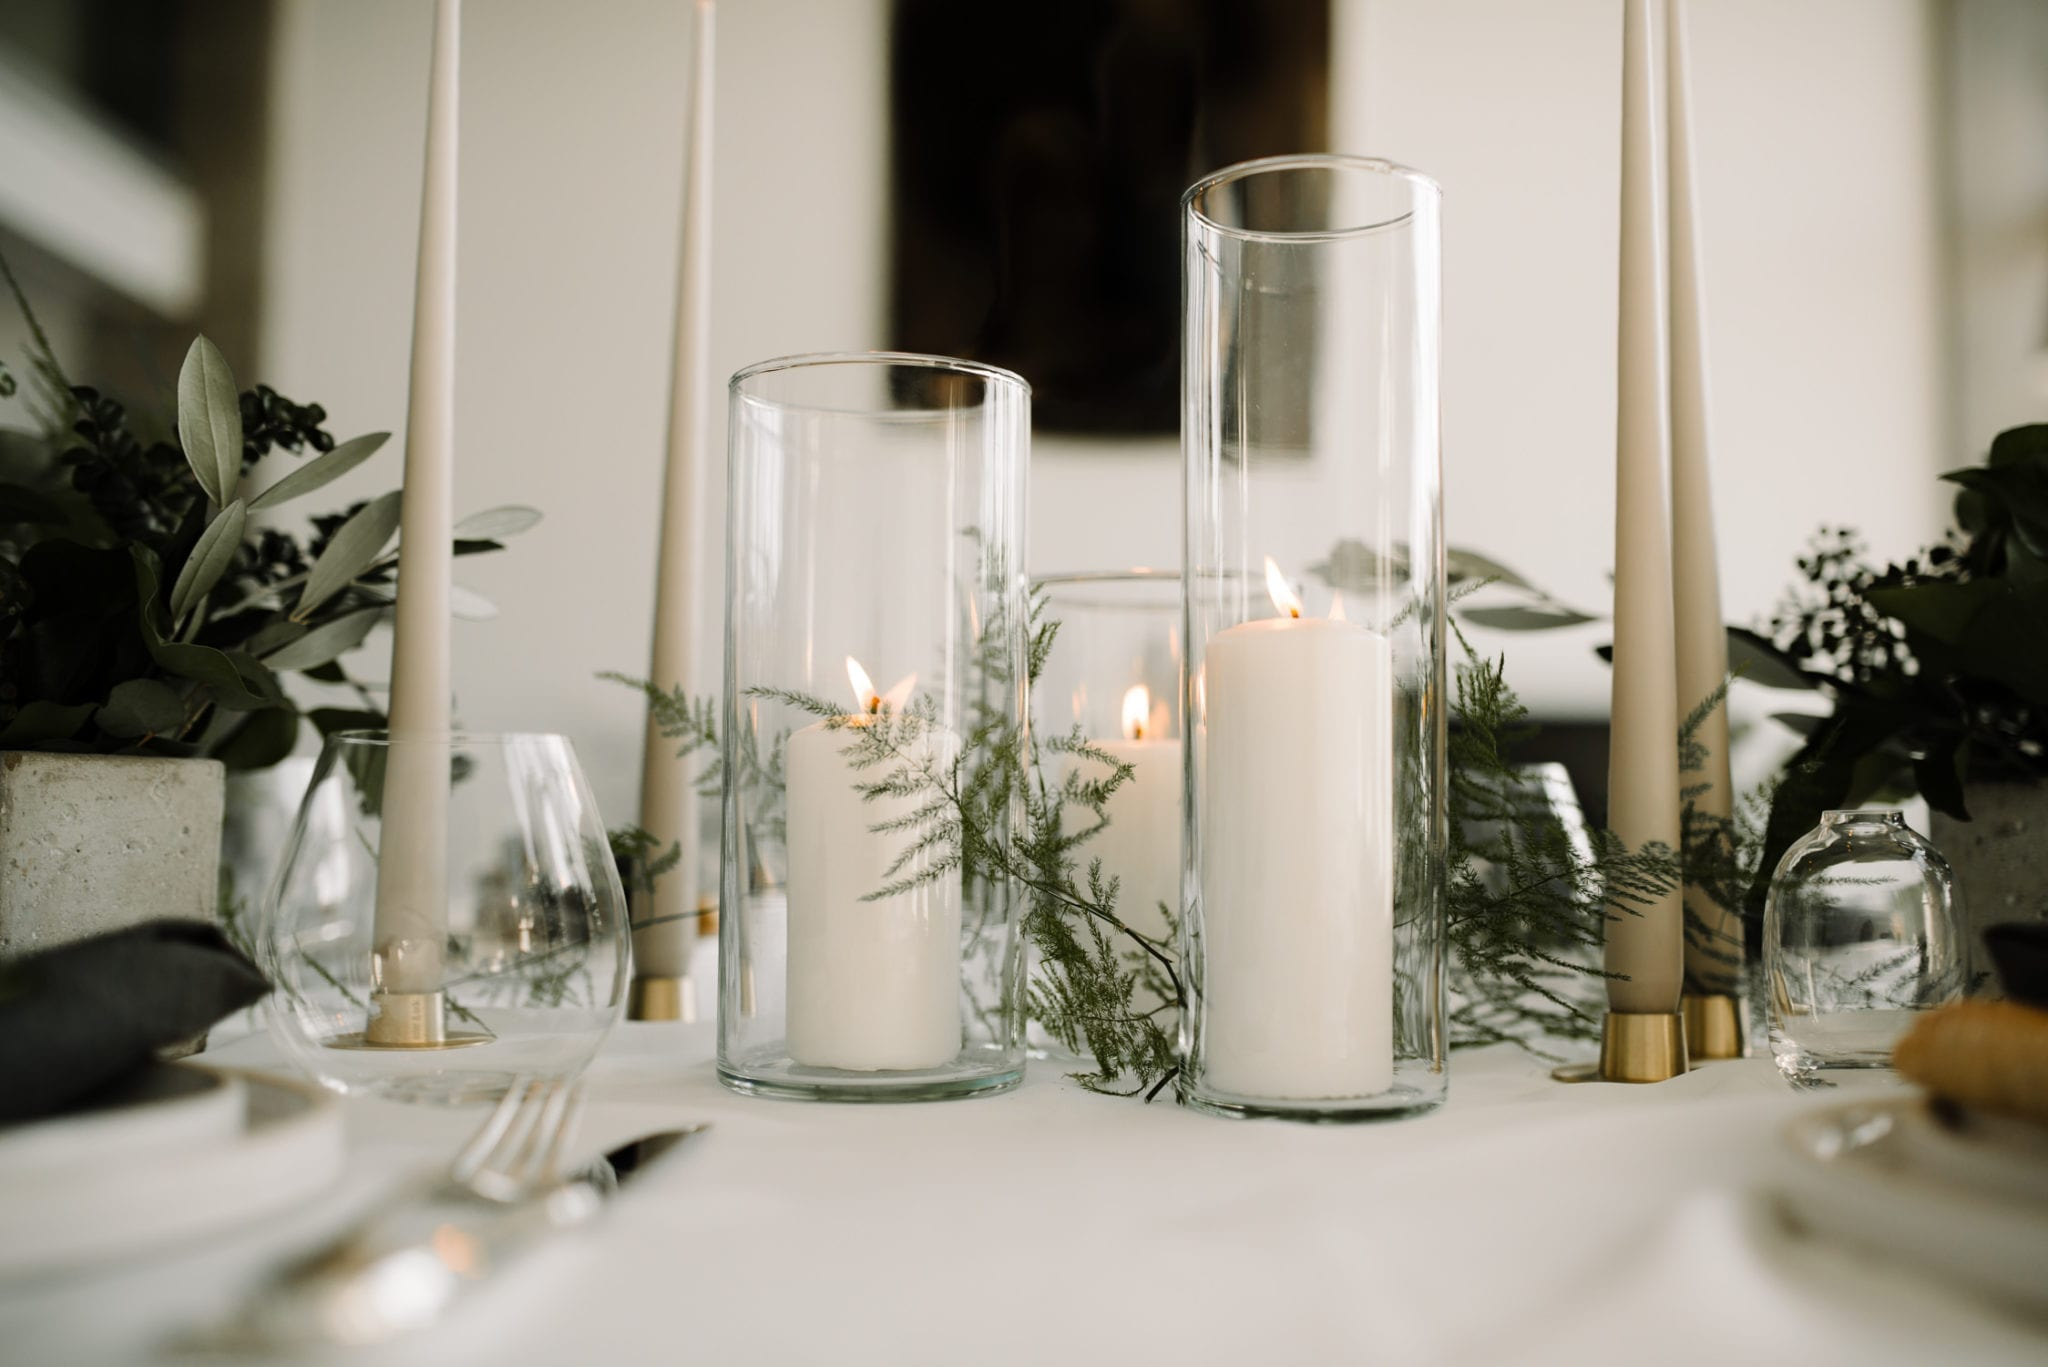 Candles and Foliage table decoration